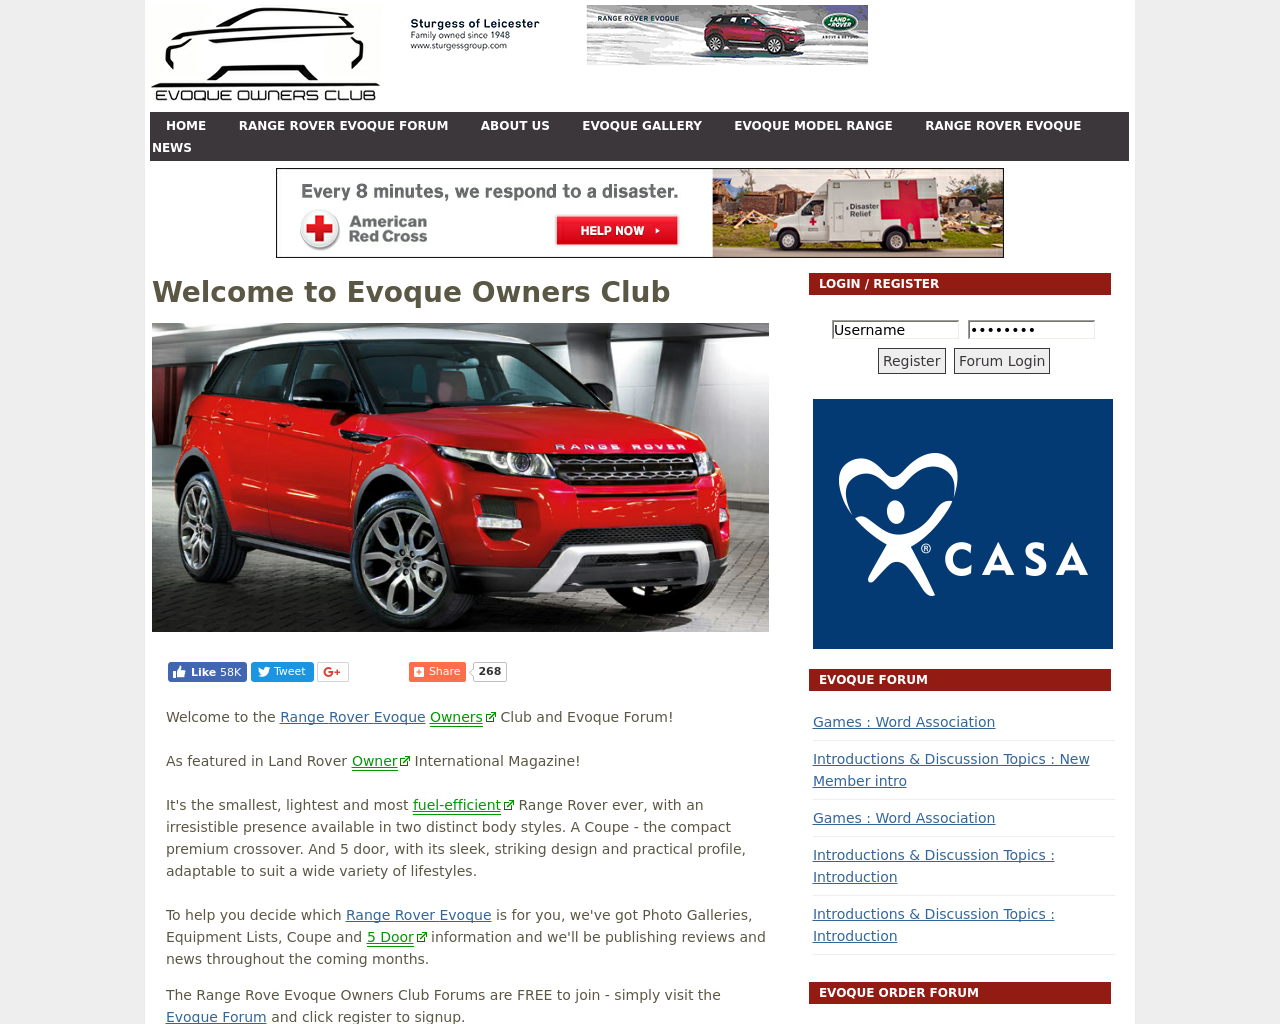 Evoque-Owners-Club-Advertising-Reviews-Pricing